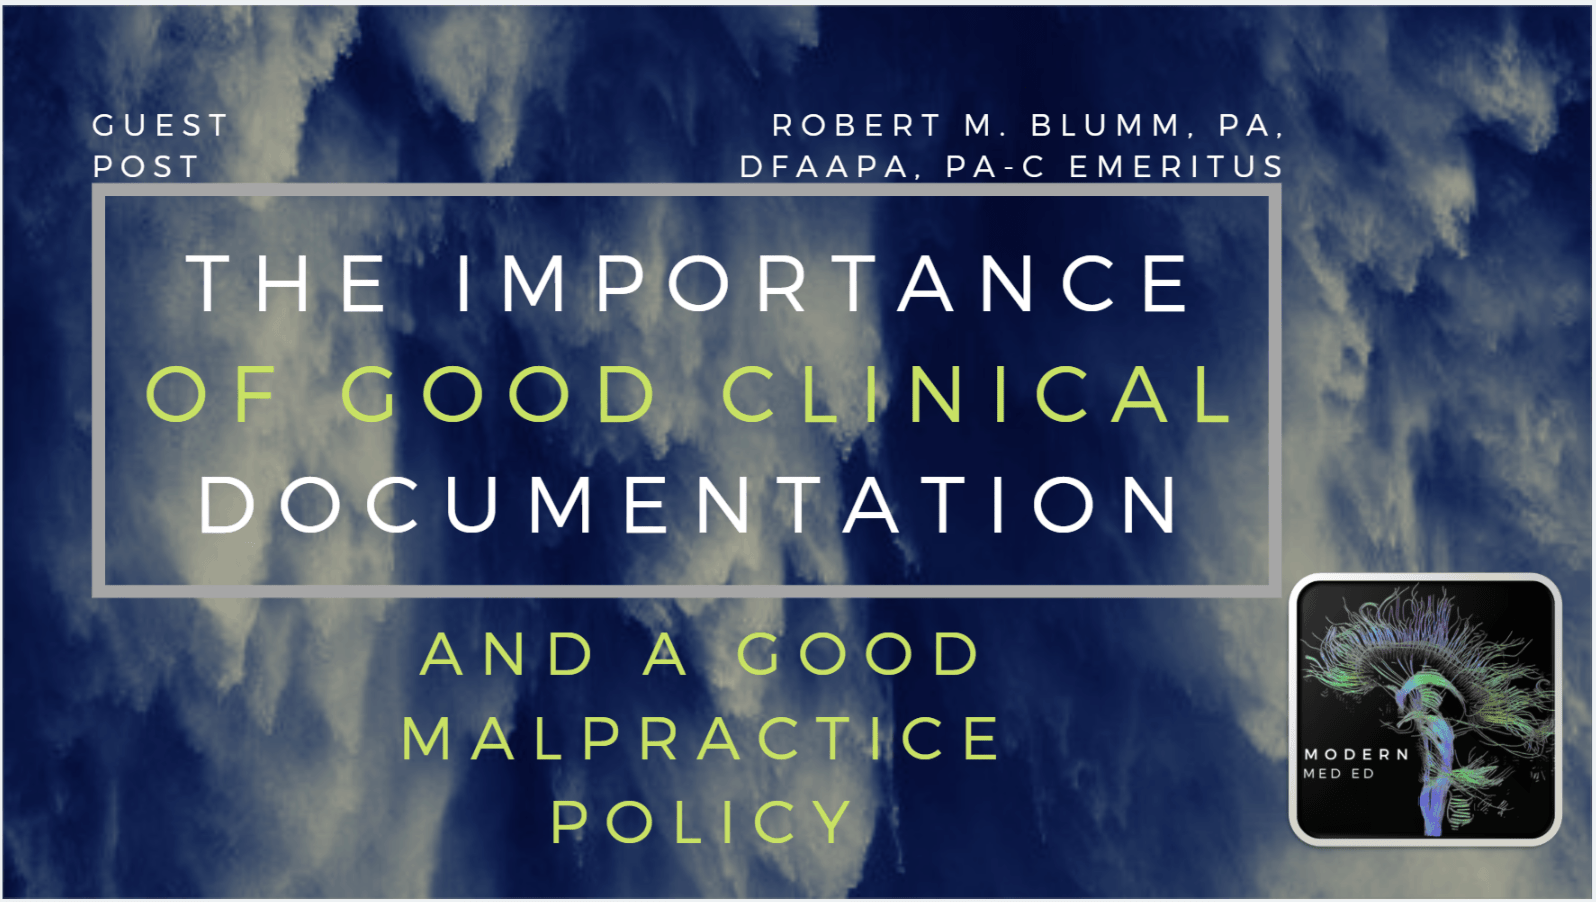 Importance of Good Clinical Documentation and Malpractice Policy Blumm May 2019